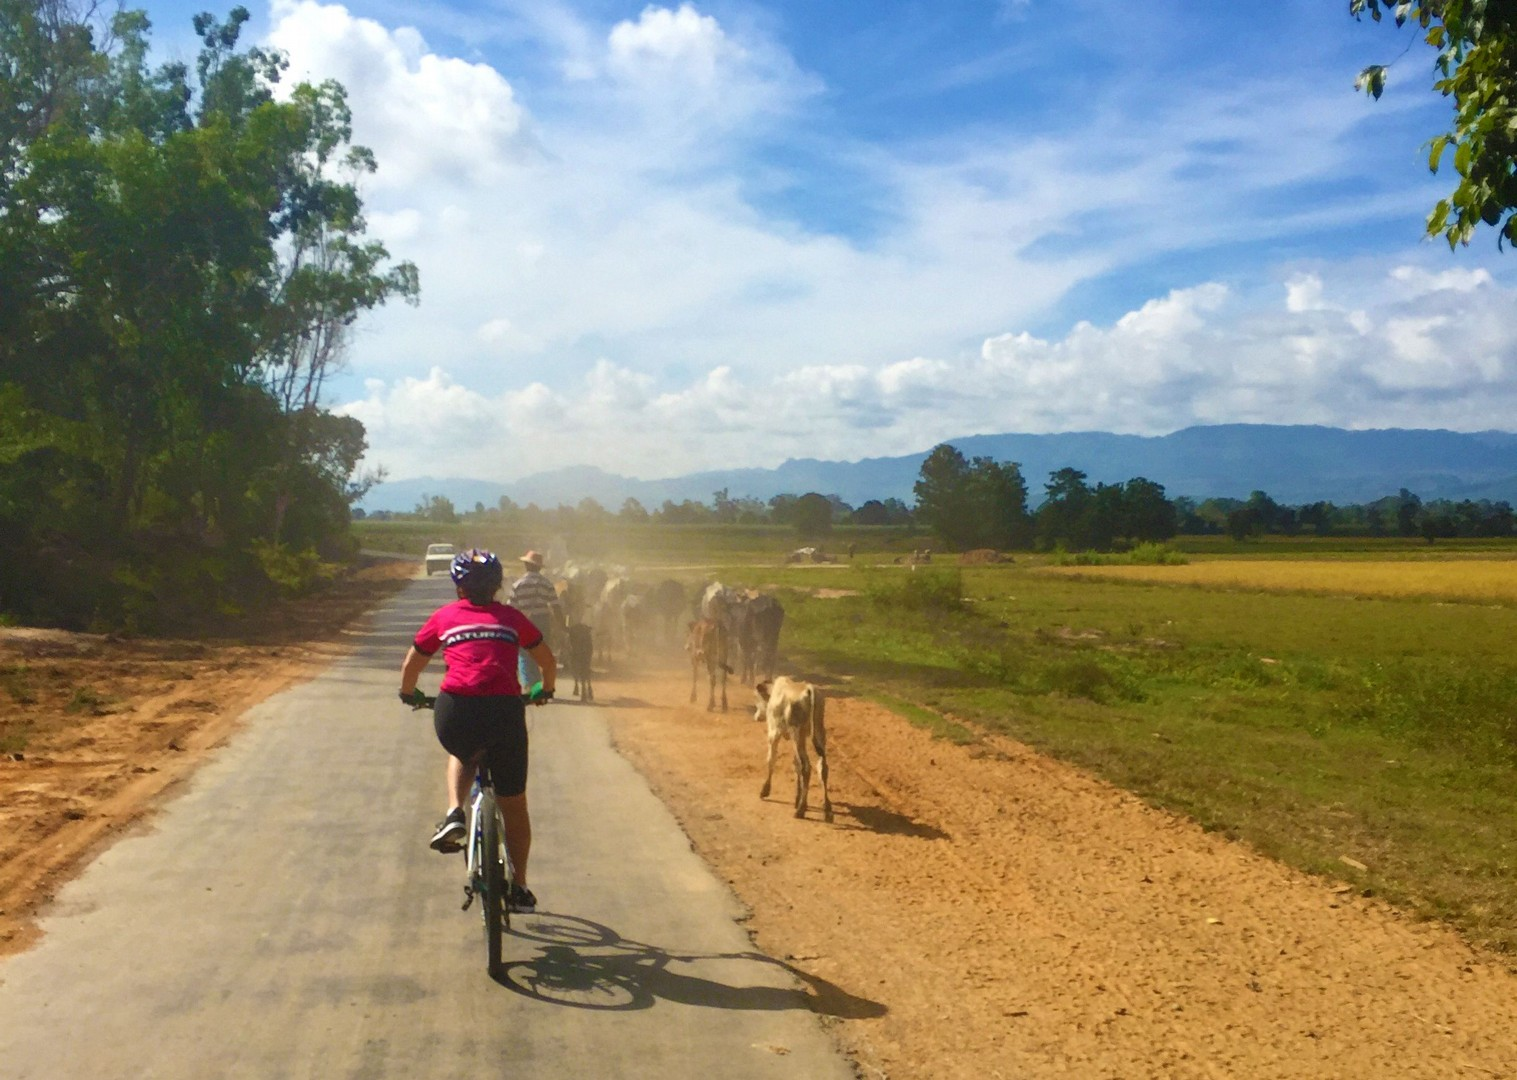 peaceful-group-cycling-countryside-burma.jpg - Myanmar (Burma) - Bagan and Beyond - Cycling Adventures